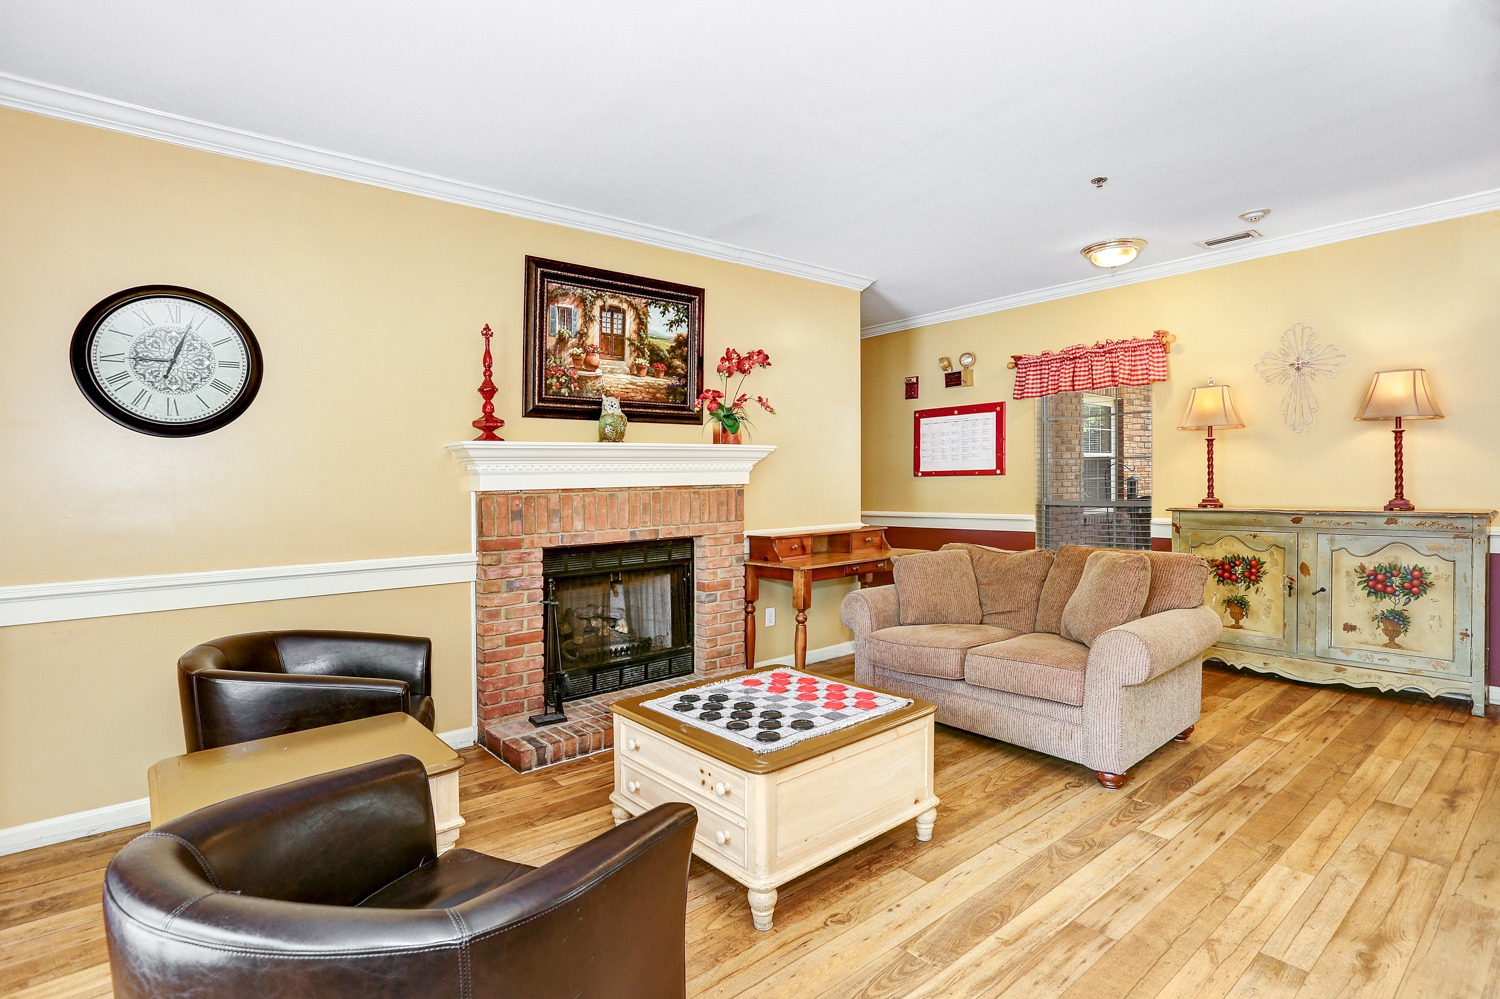 Country Cottages Hoover - Common Area with checkers and fireplace